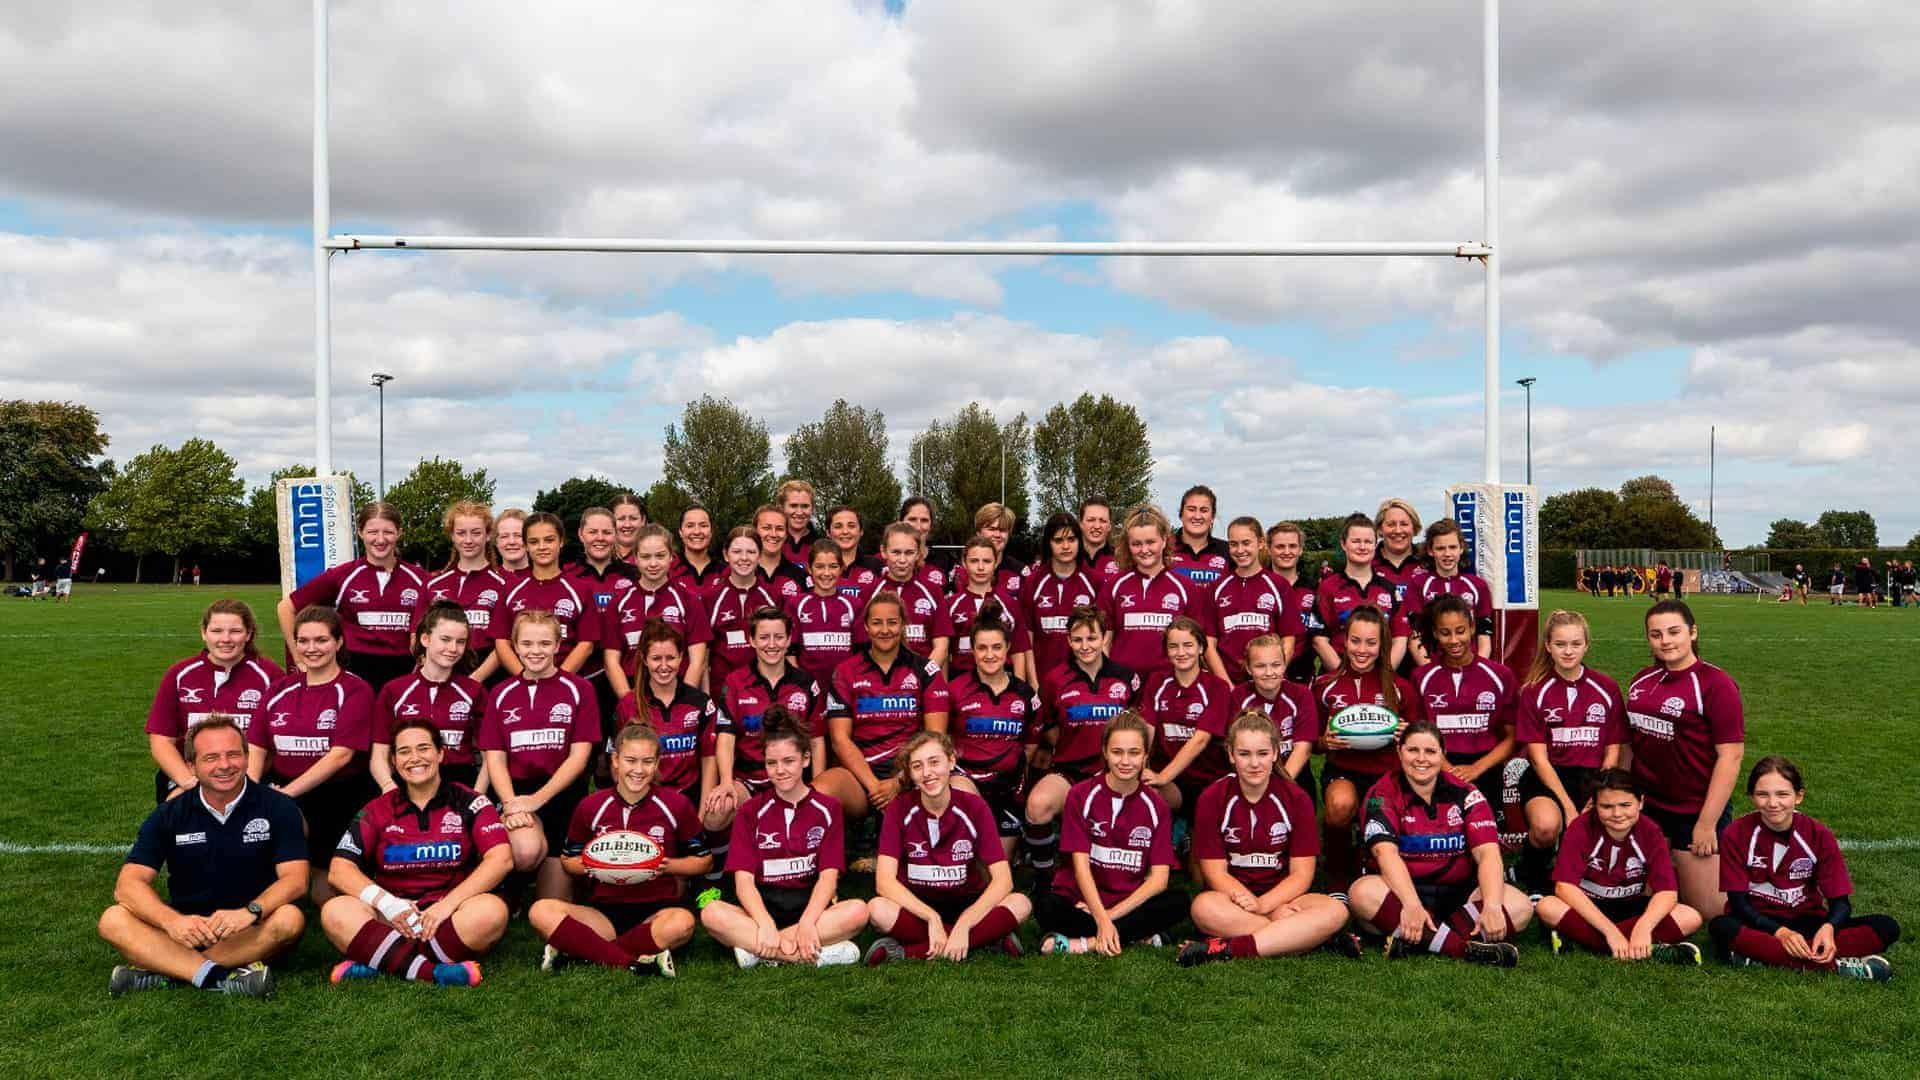 Mnp Mnp Hitchin Rugby Ladies Girls Teams